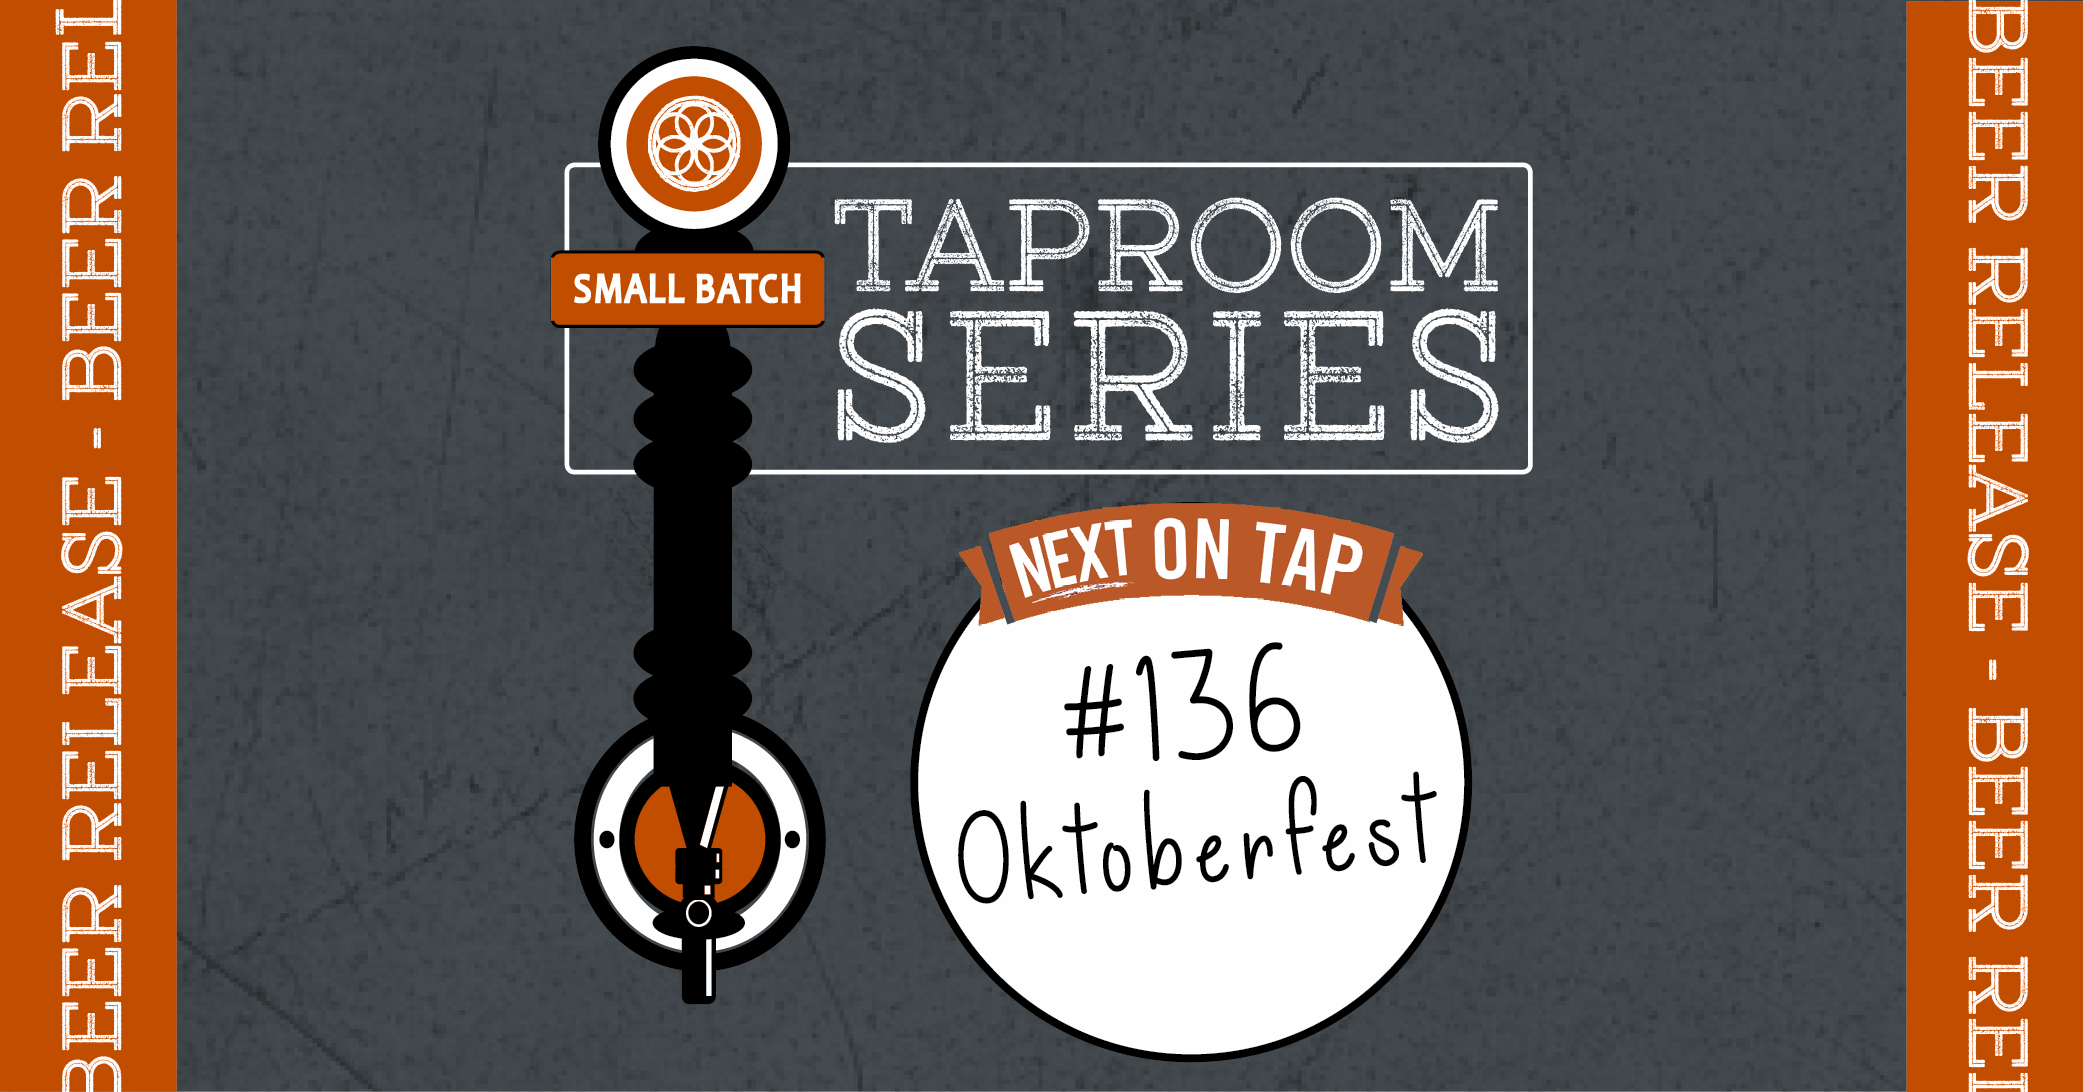 Taproom Series_FB Event Cover_136 Oktoberfest.png